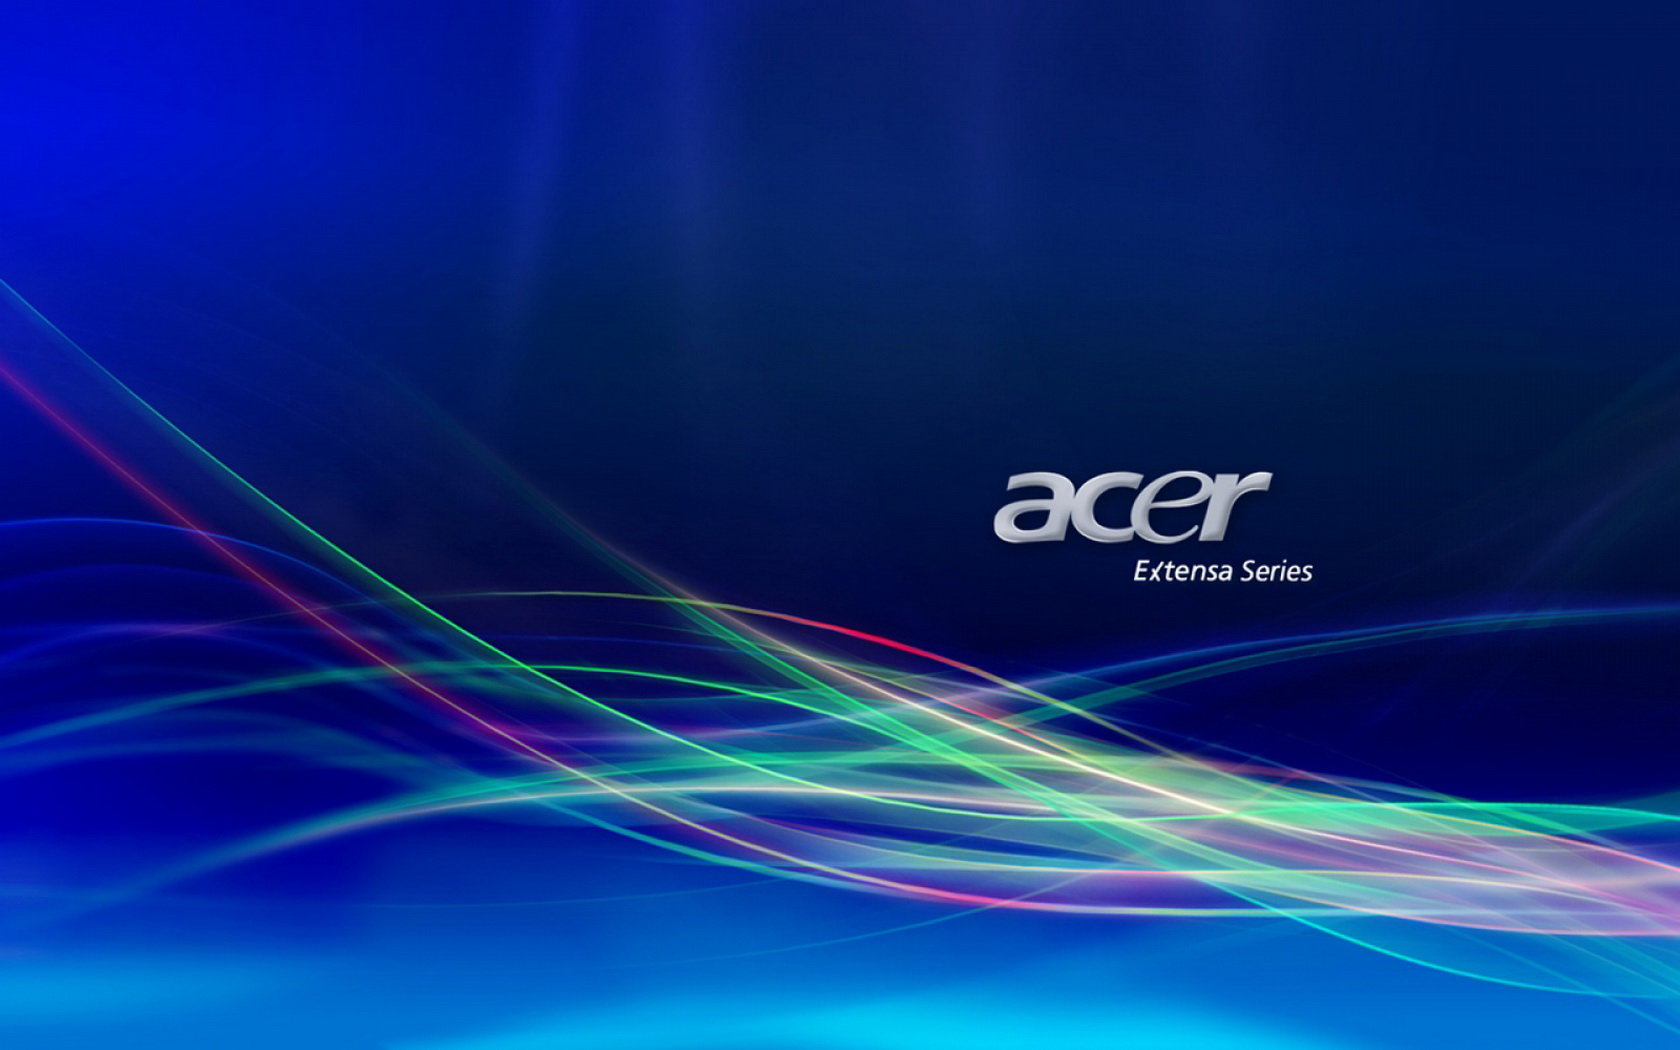 Free download Acer wallpaper ID:291033 hd 1680x1050 for PC